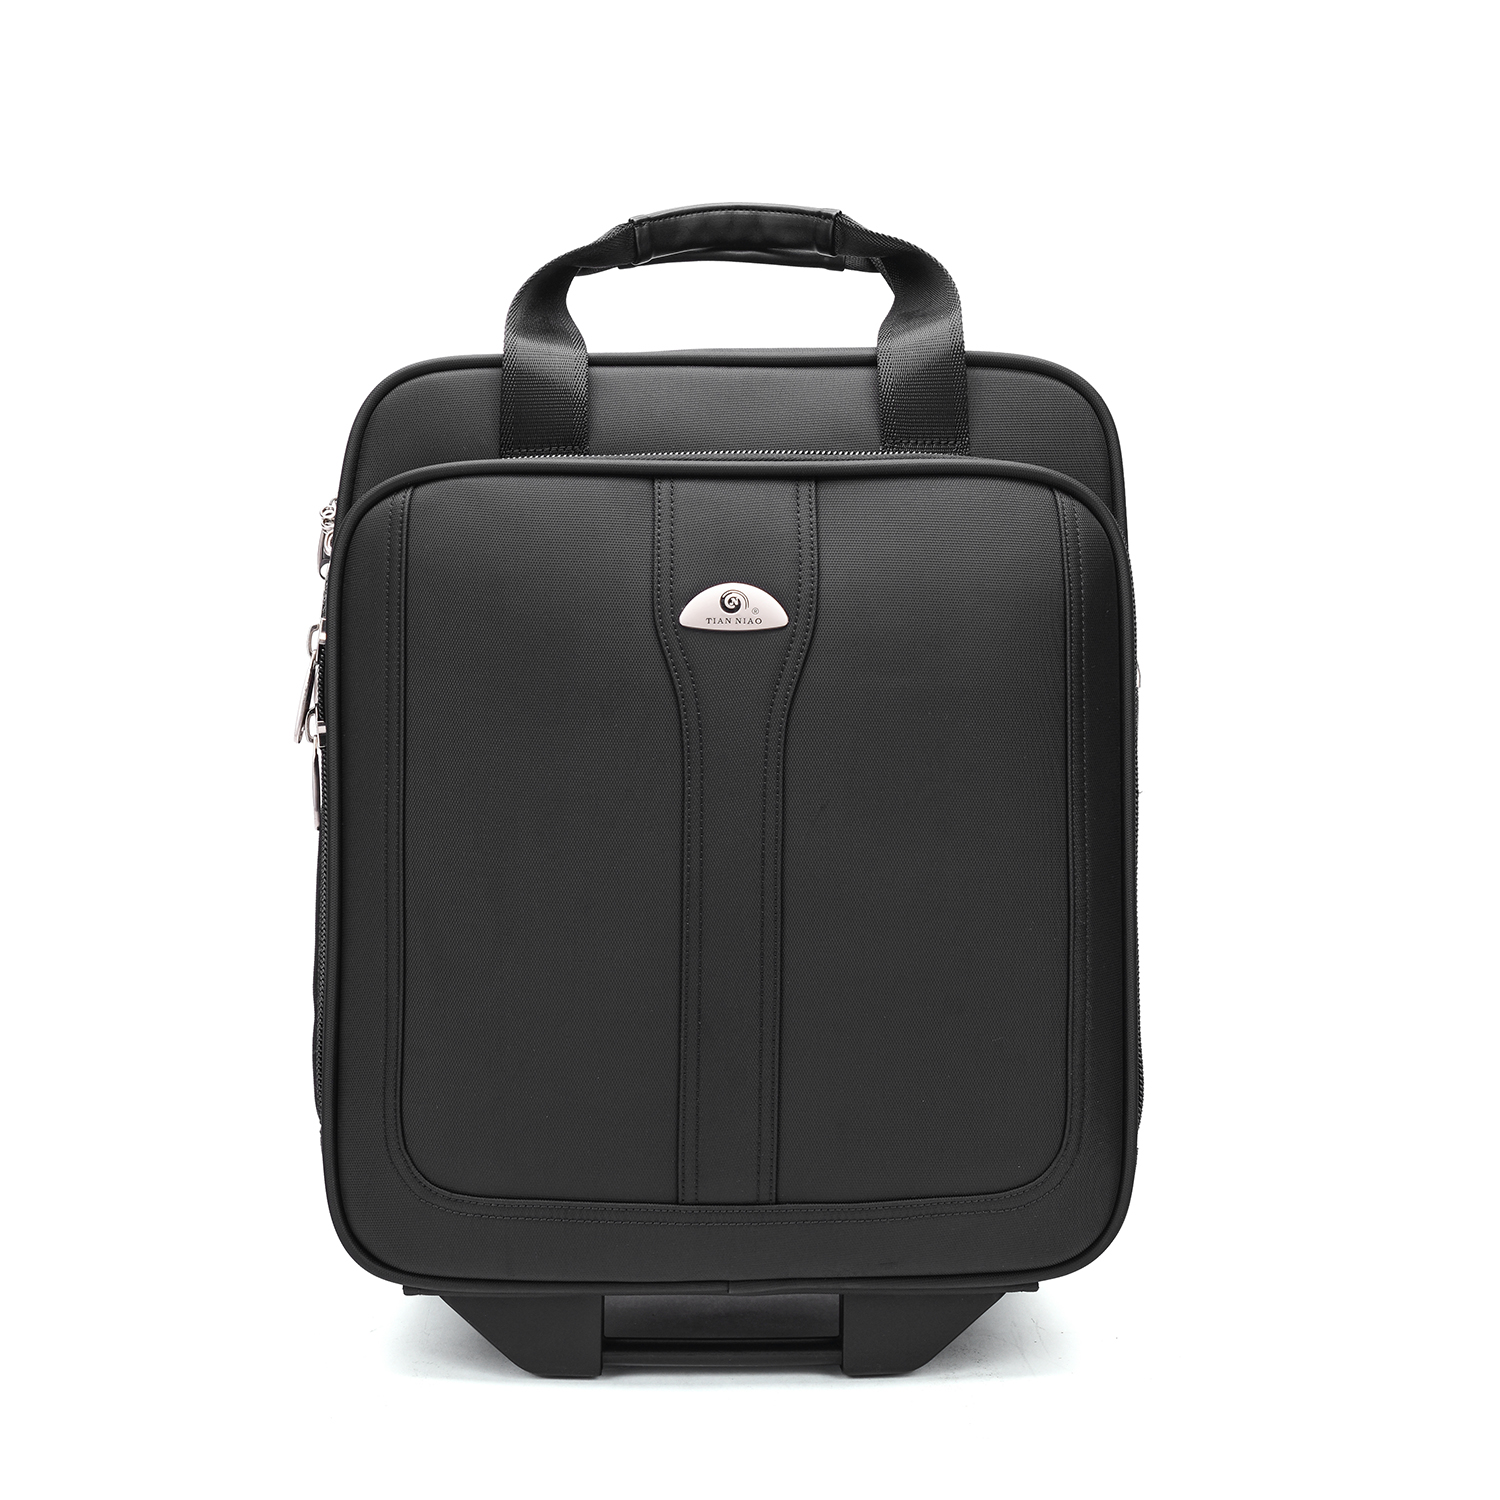 1715-04 light weight trolley laptop bag for business